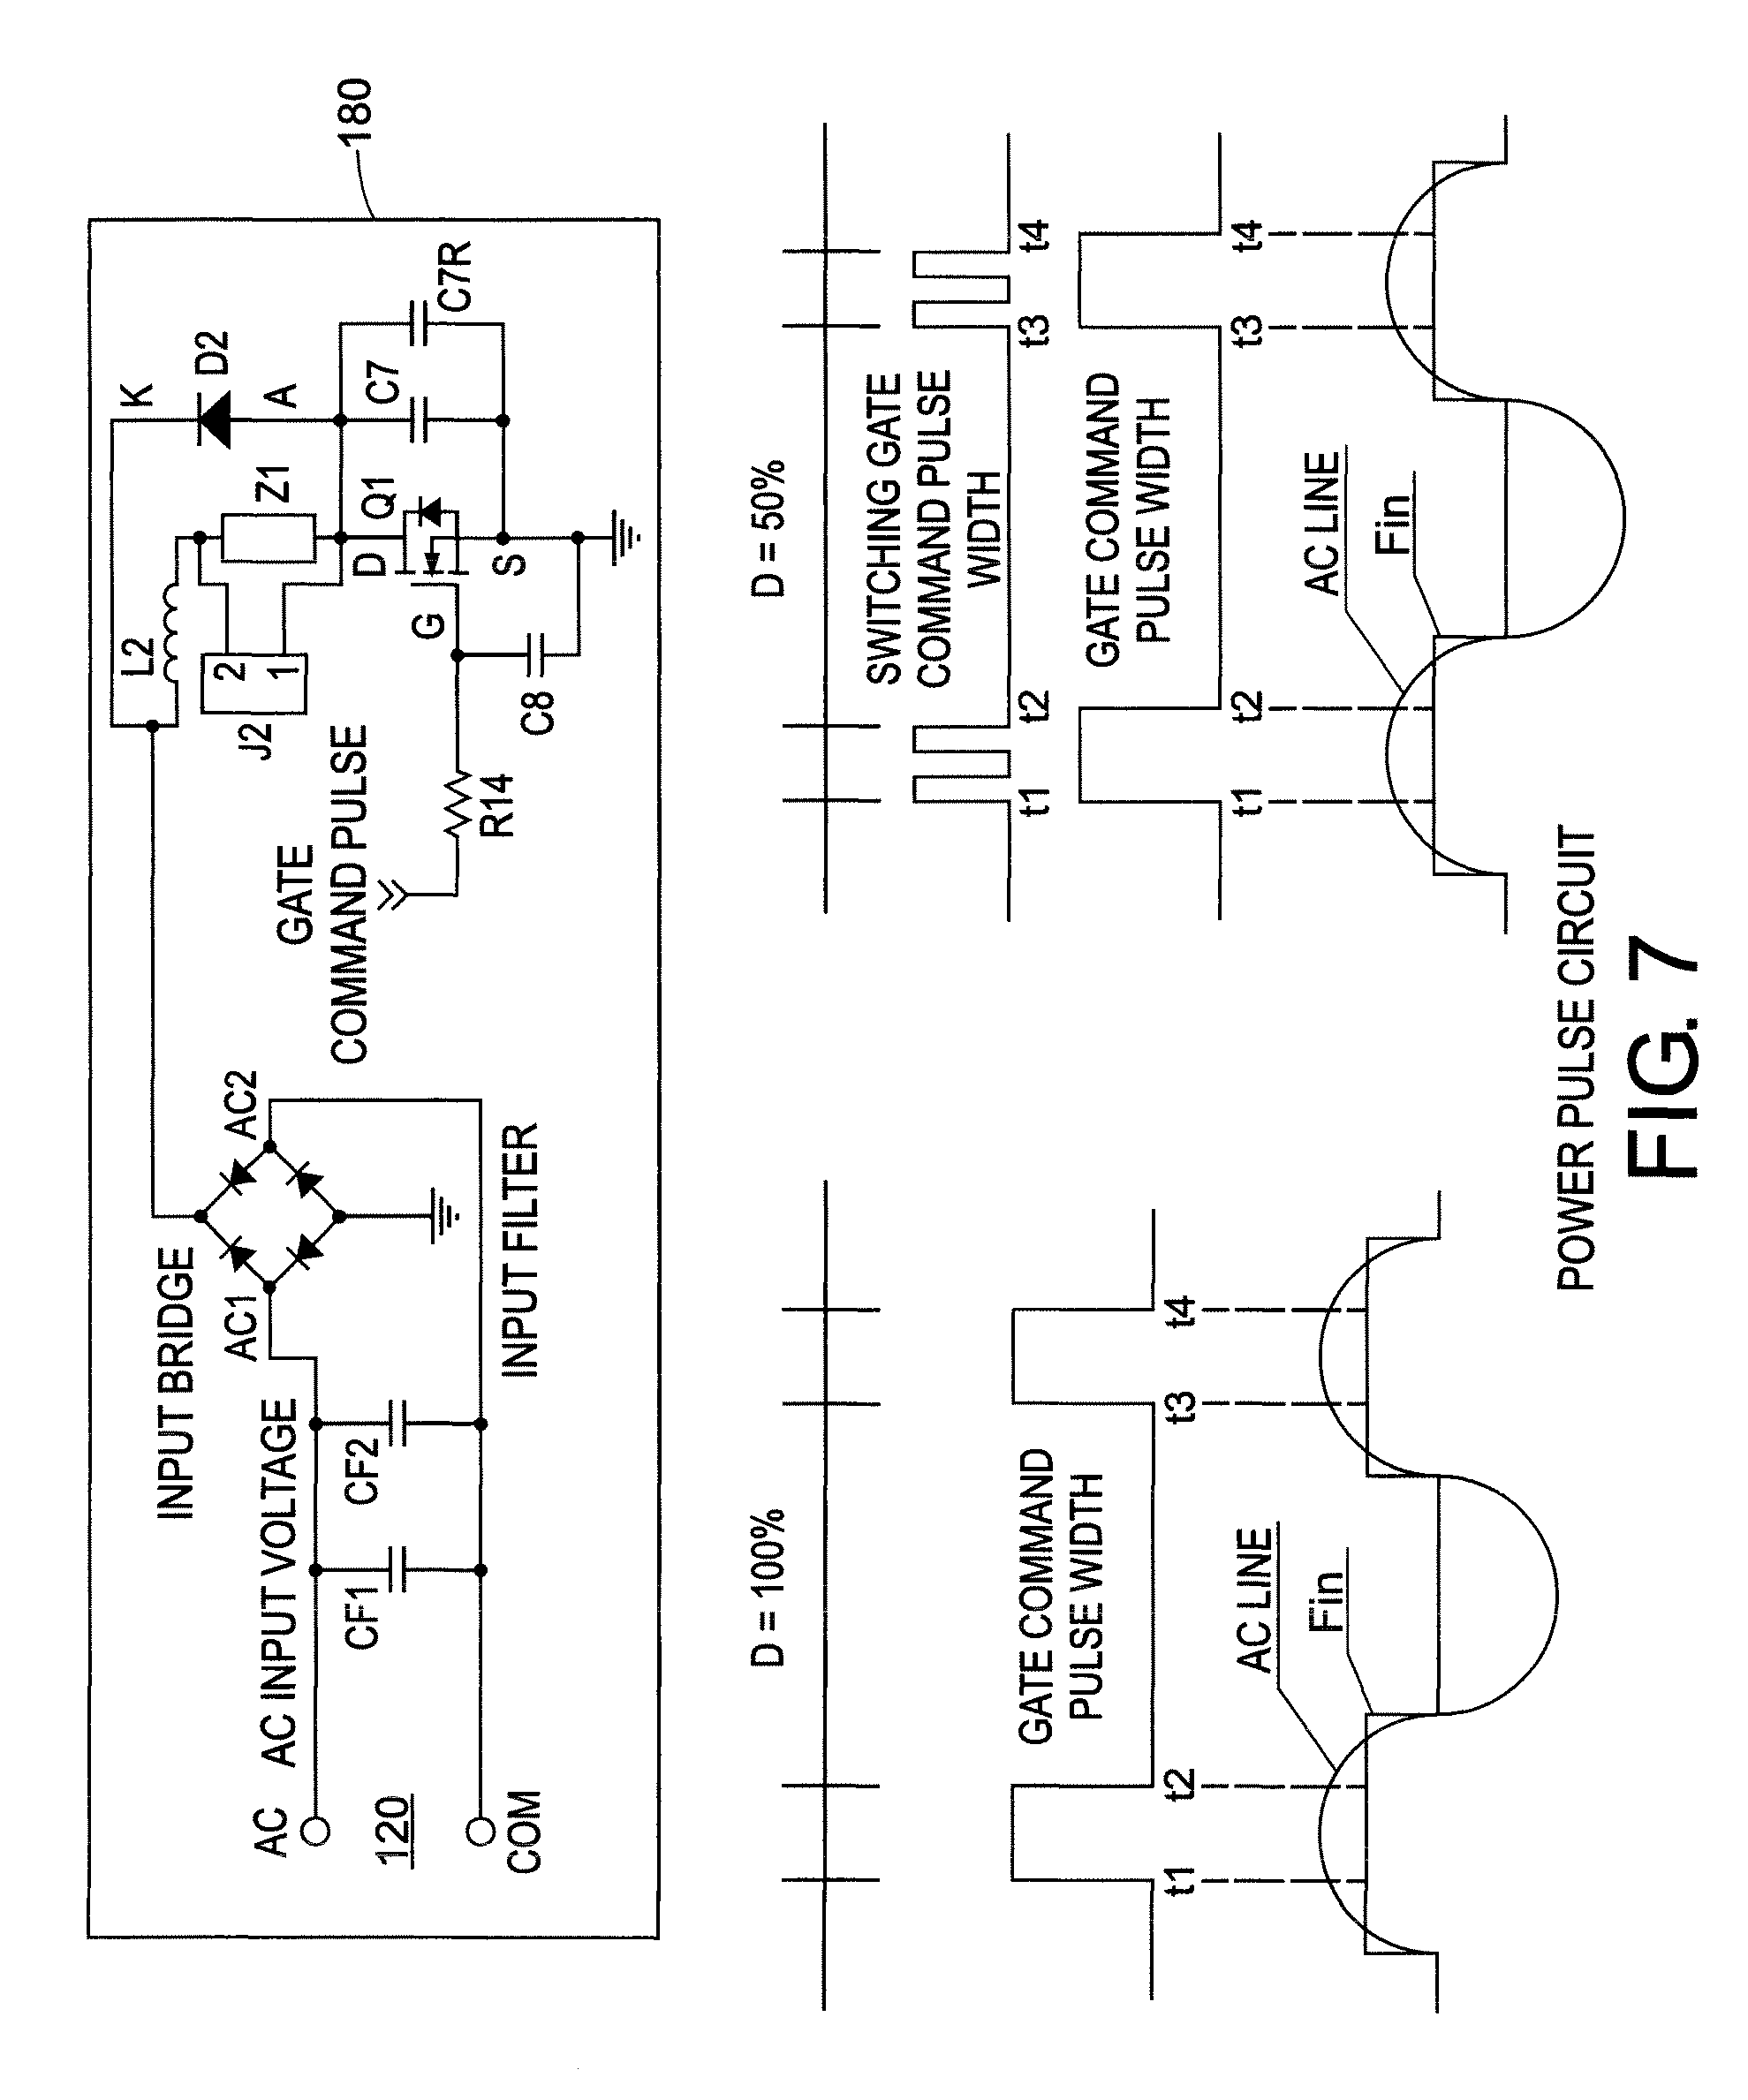 patent us8294371 - led traffic signal with synchronized power pulse circuit